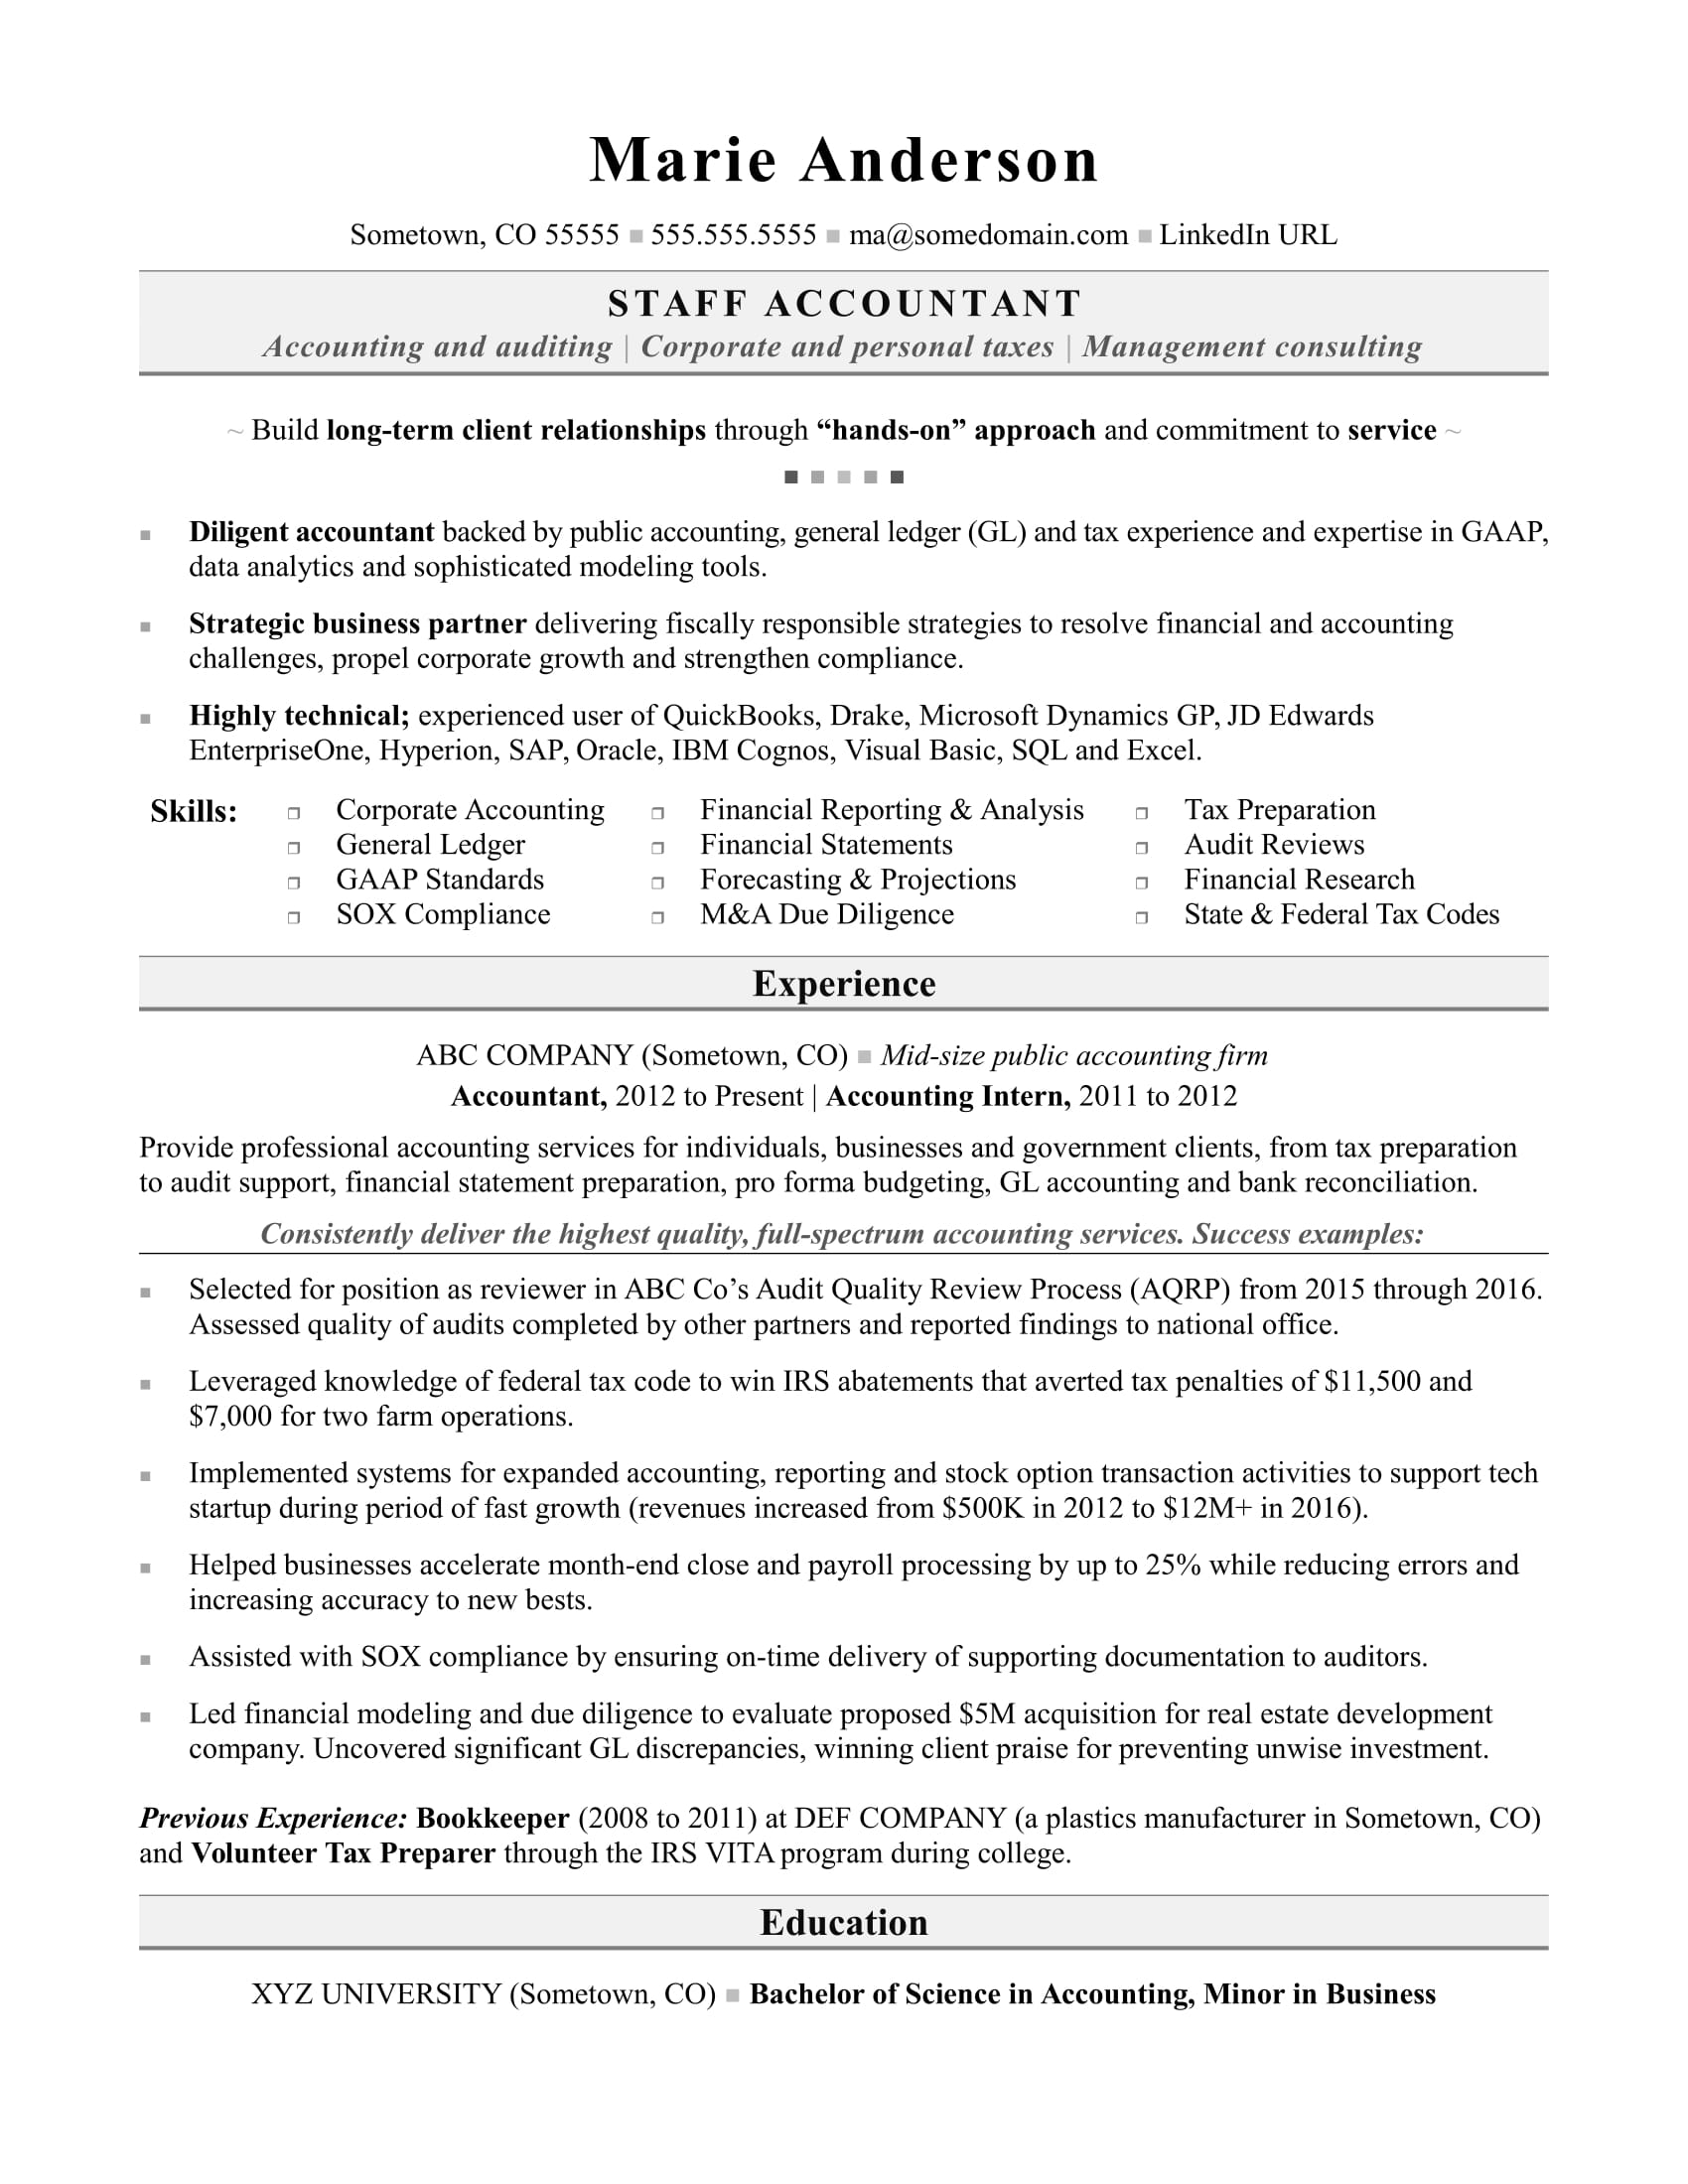 accounting resume skills - Ronni kaptanband co